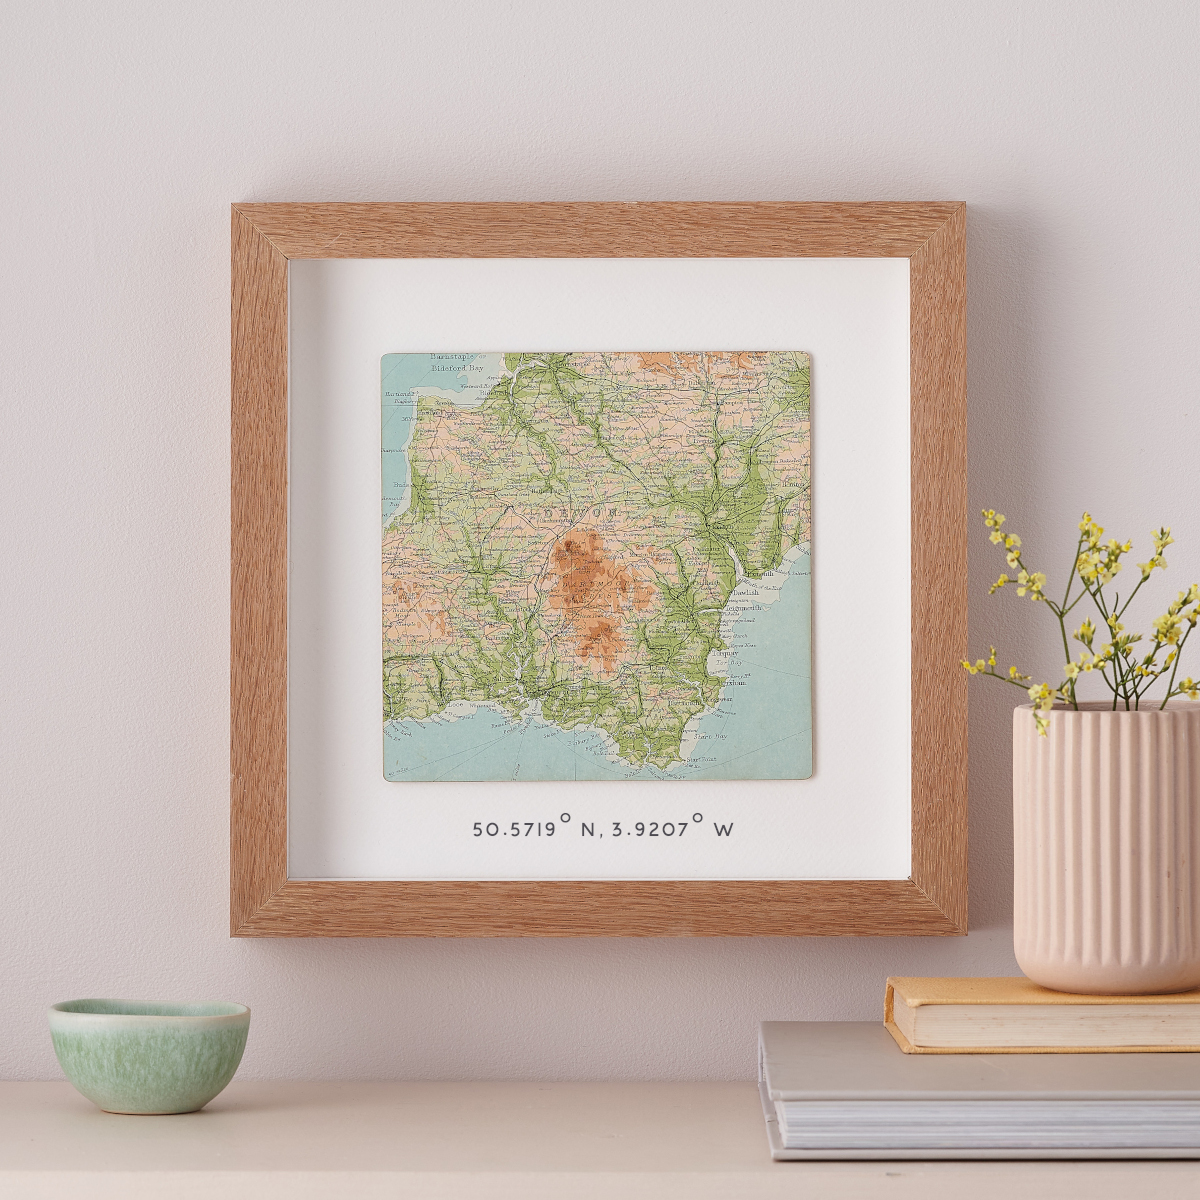 Map Artwork depicting location of their new home